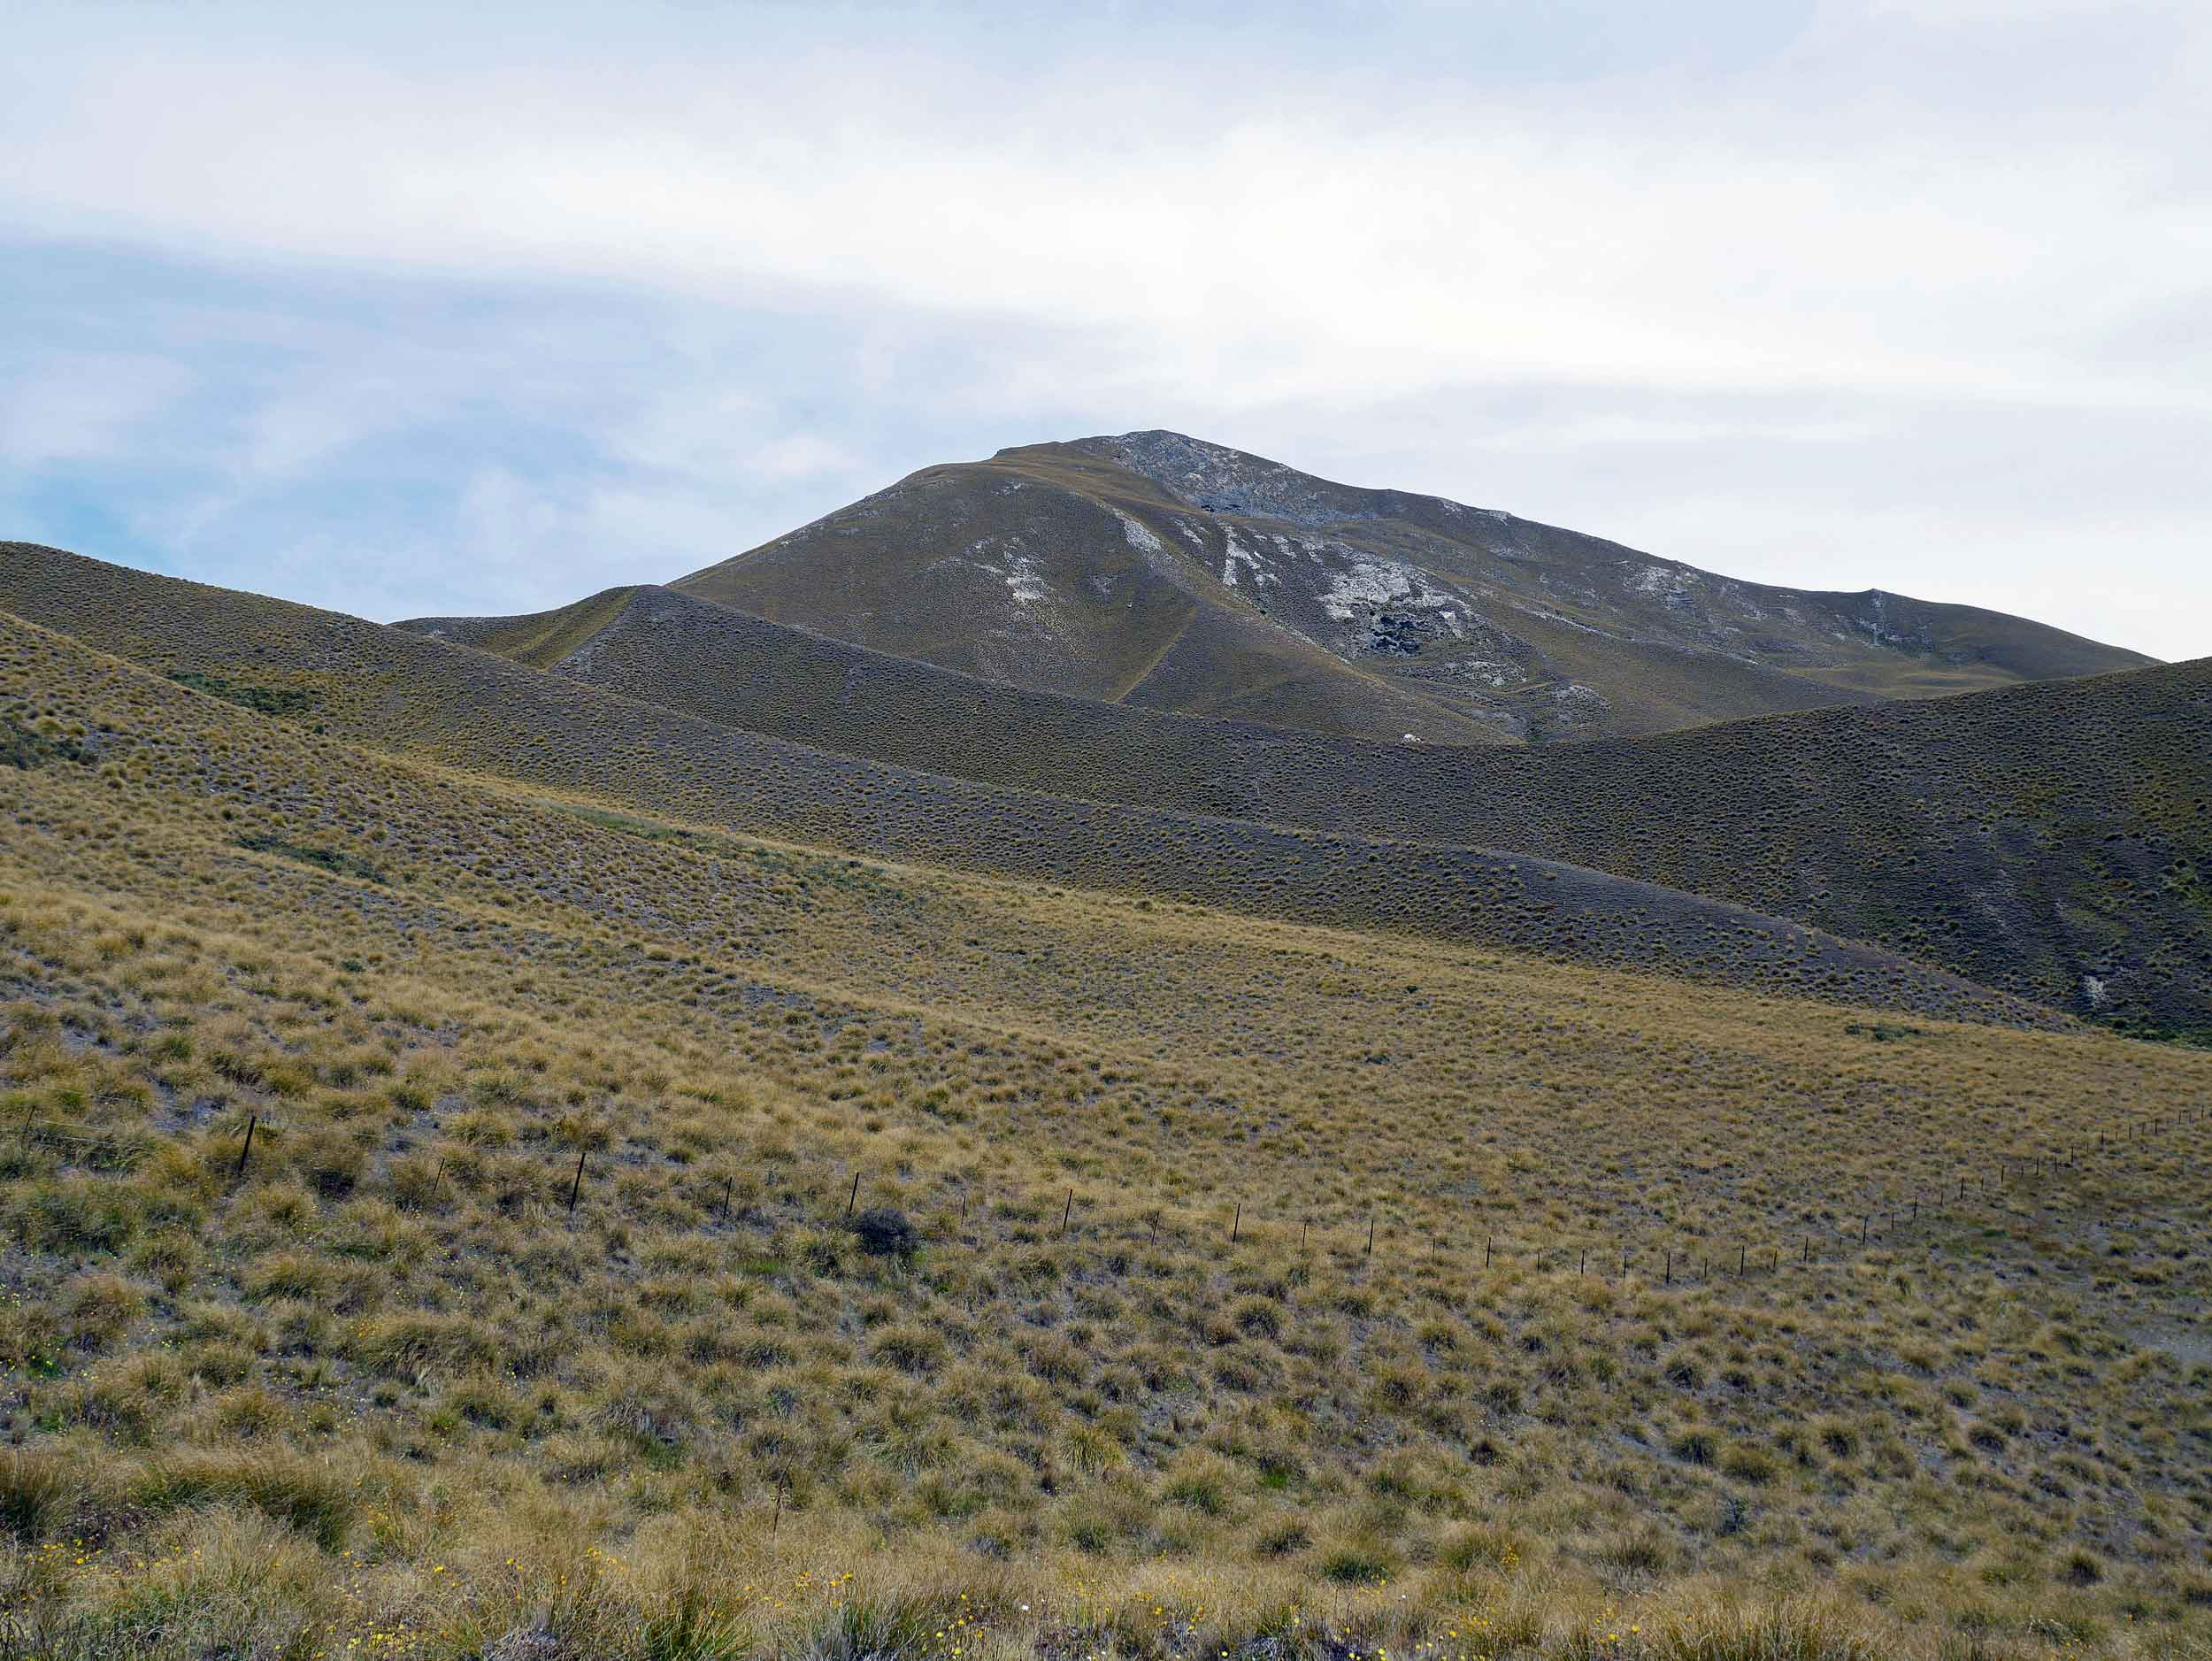 Driving north past Queenstown, the landscape becomes hot and arid with hills covered in tussock (Jan 10).